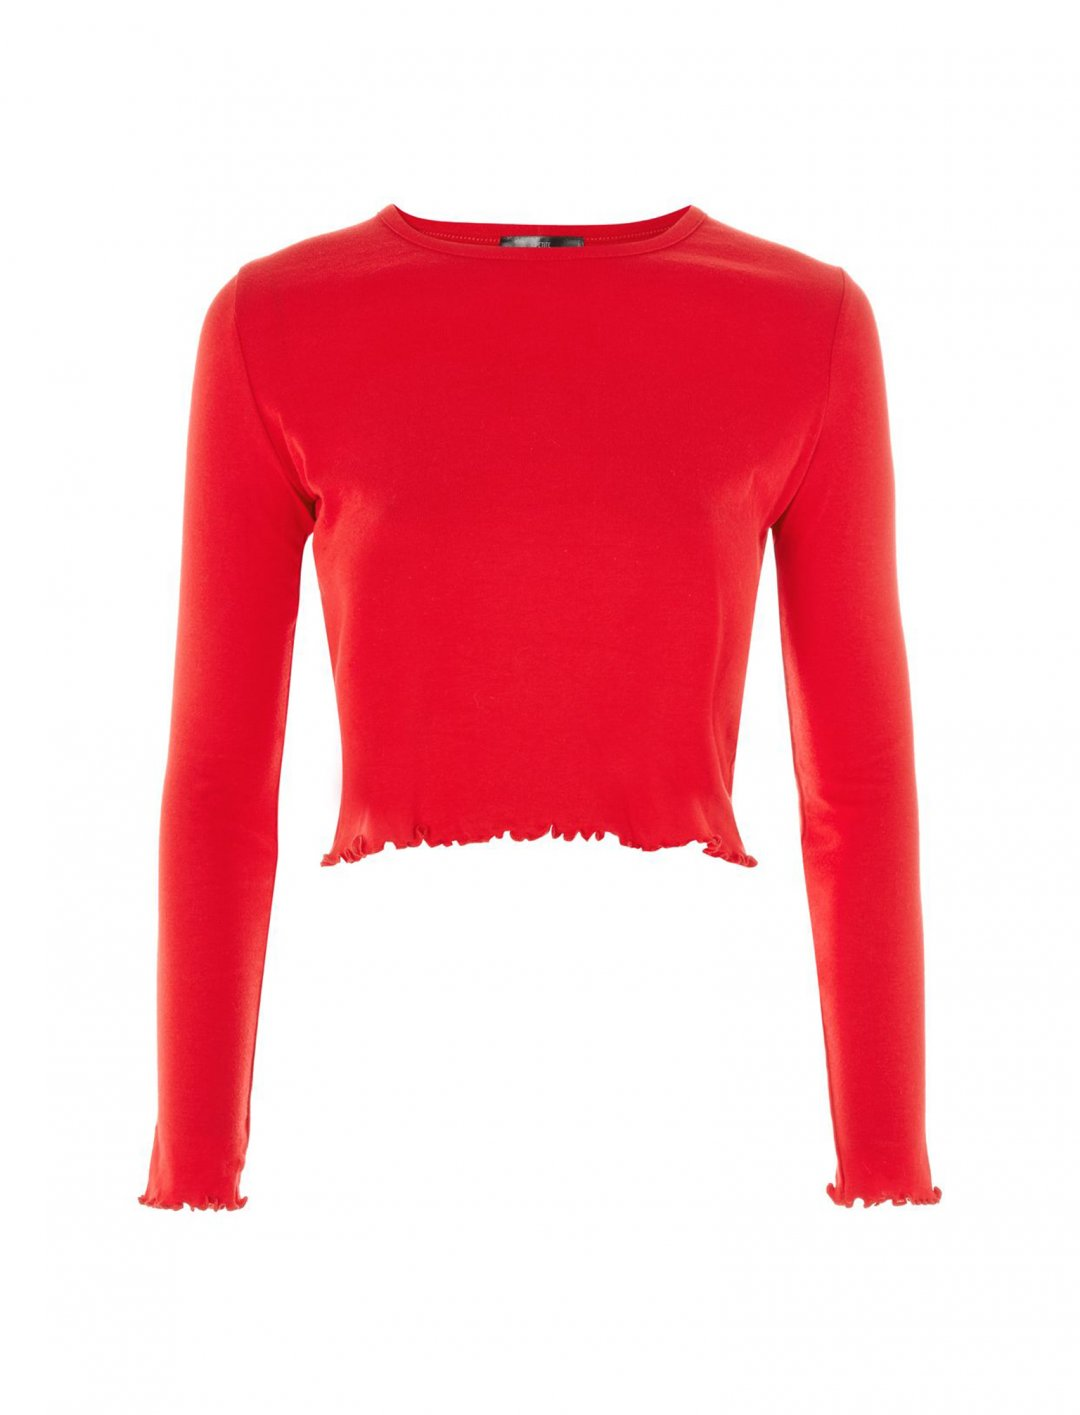 """Topshop Lettuce Crop Top {""""id"""":5,""""product_section_id"""":1,""""name"""":""""Clothing"""",""""order"""":5} Topshop"""